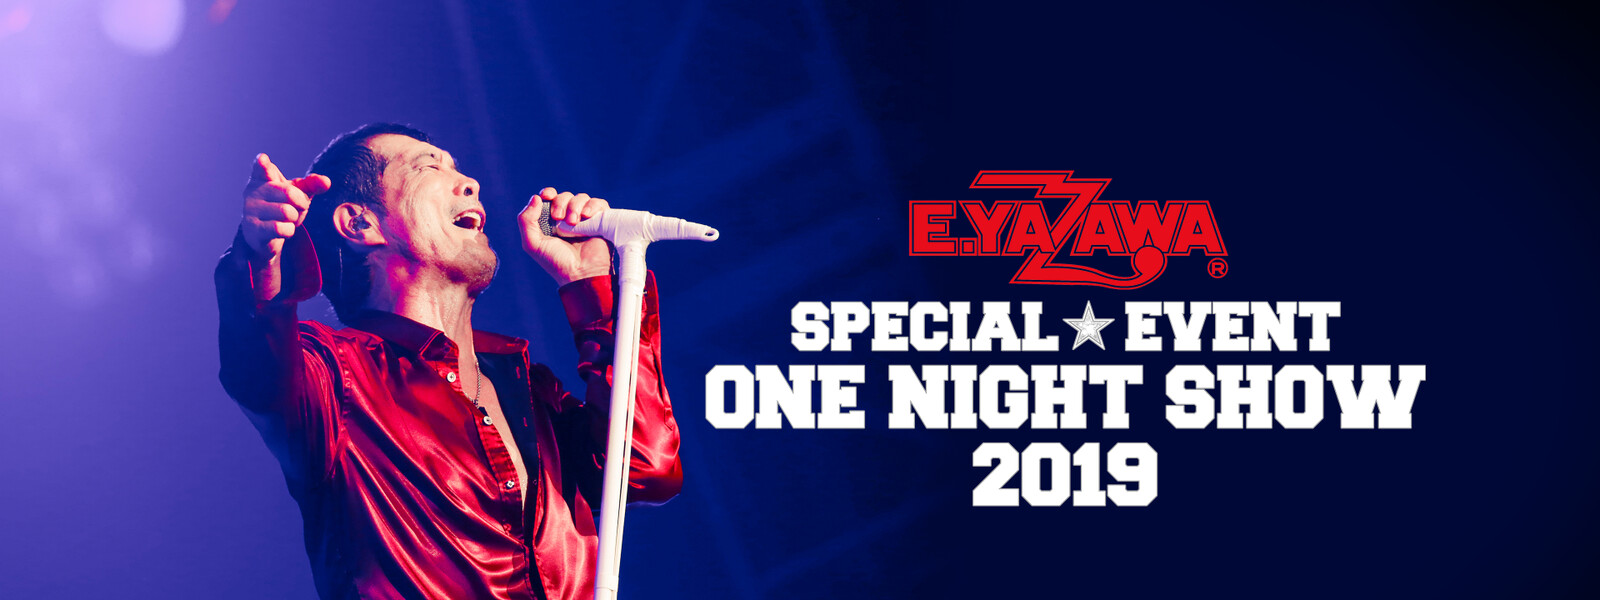 E.YAZAWA SPECIAL EVENT 「ONE NIGHT SHOW 2019」 動画